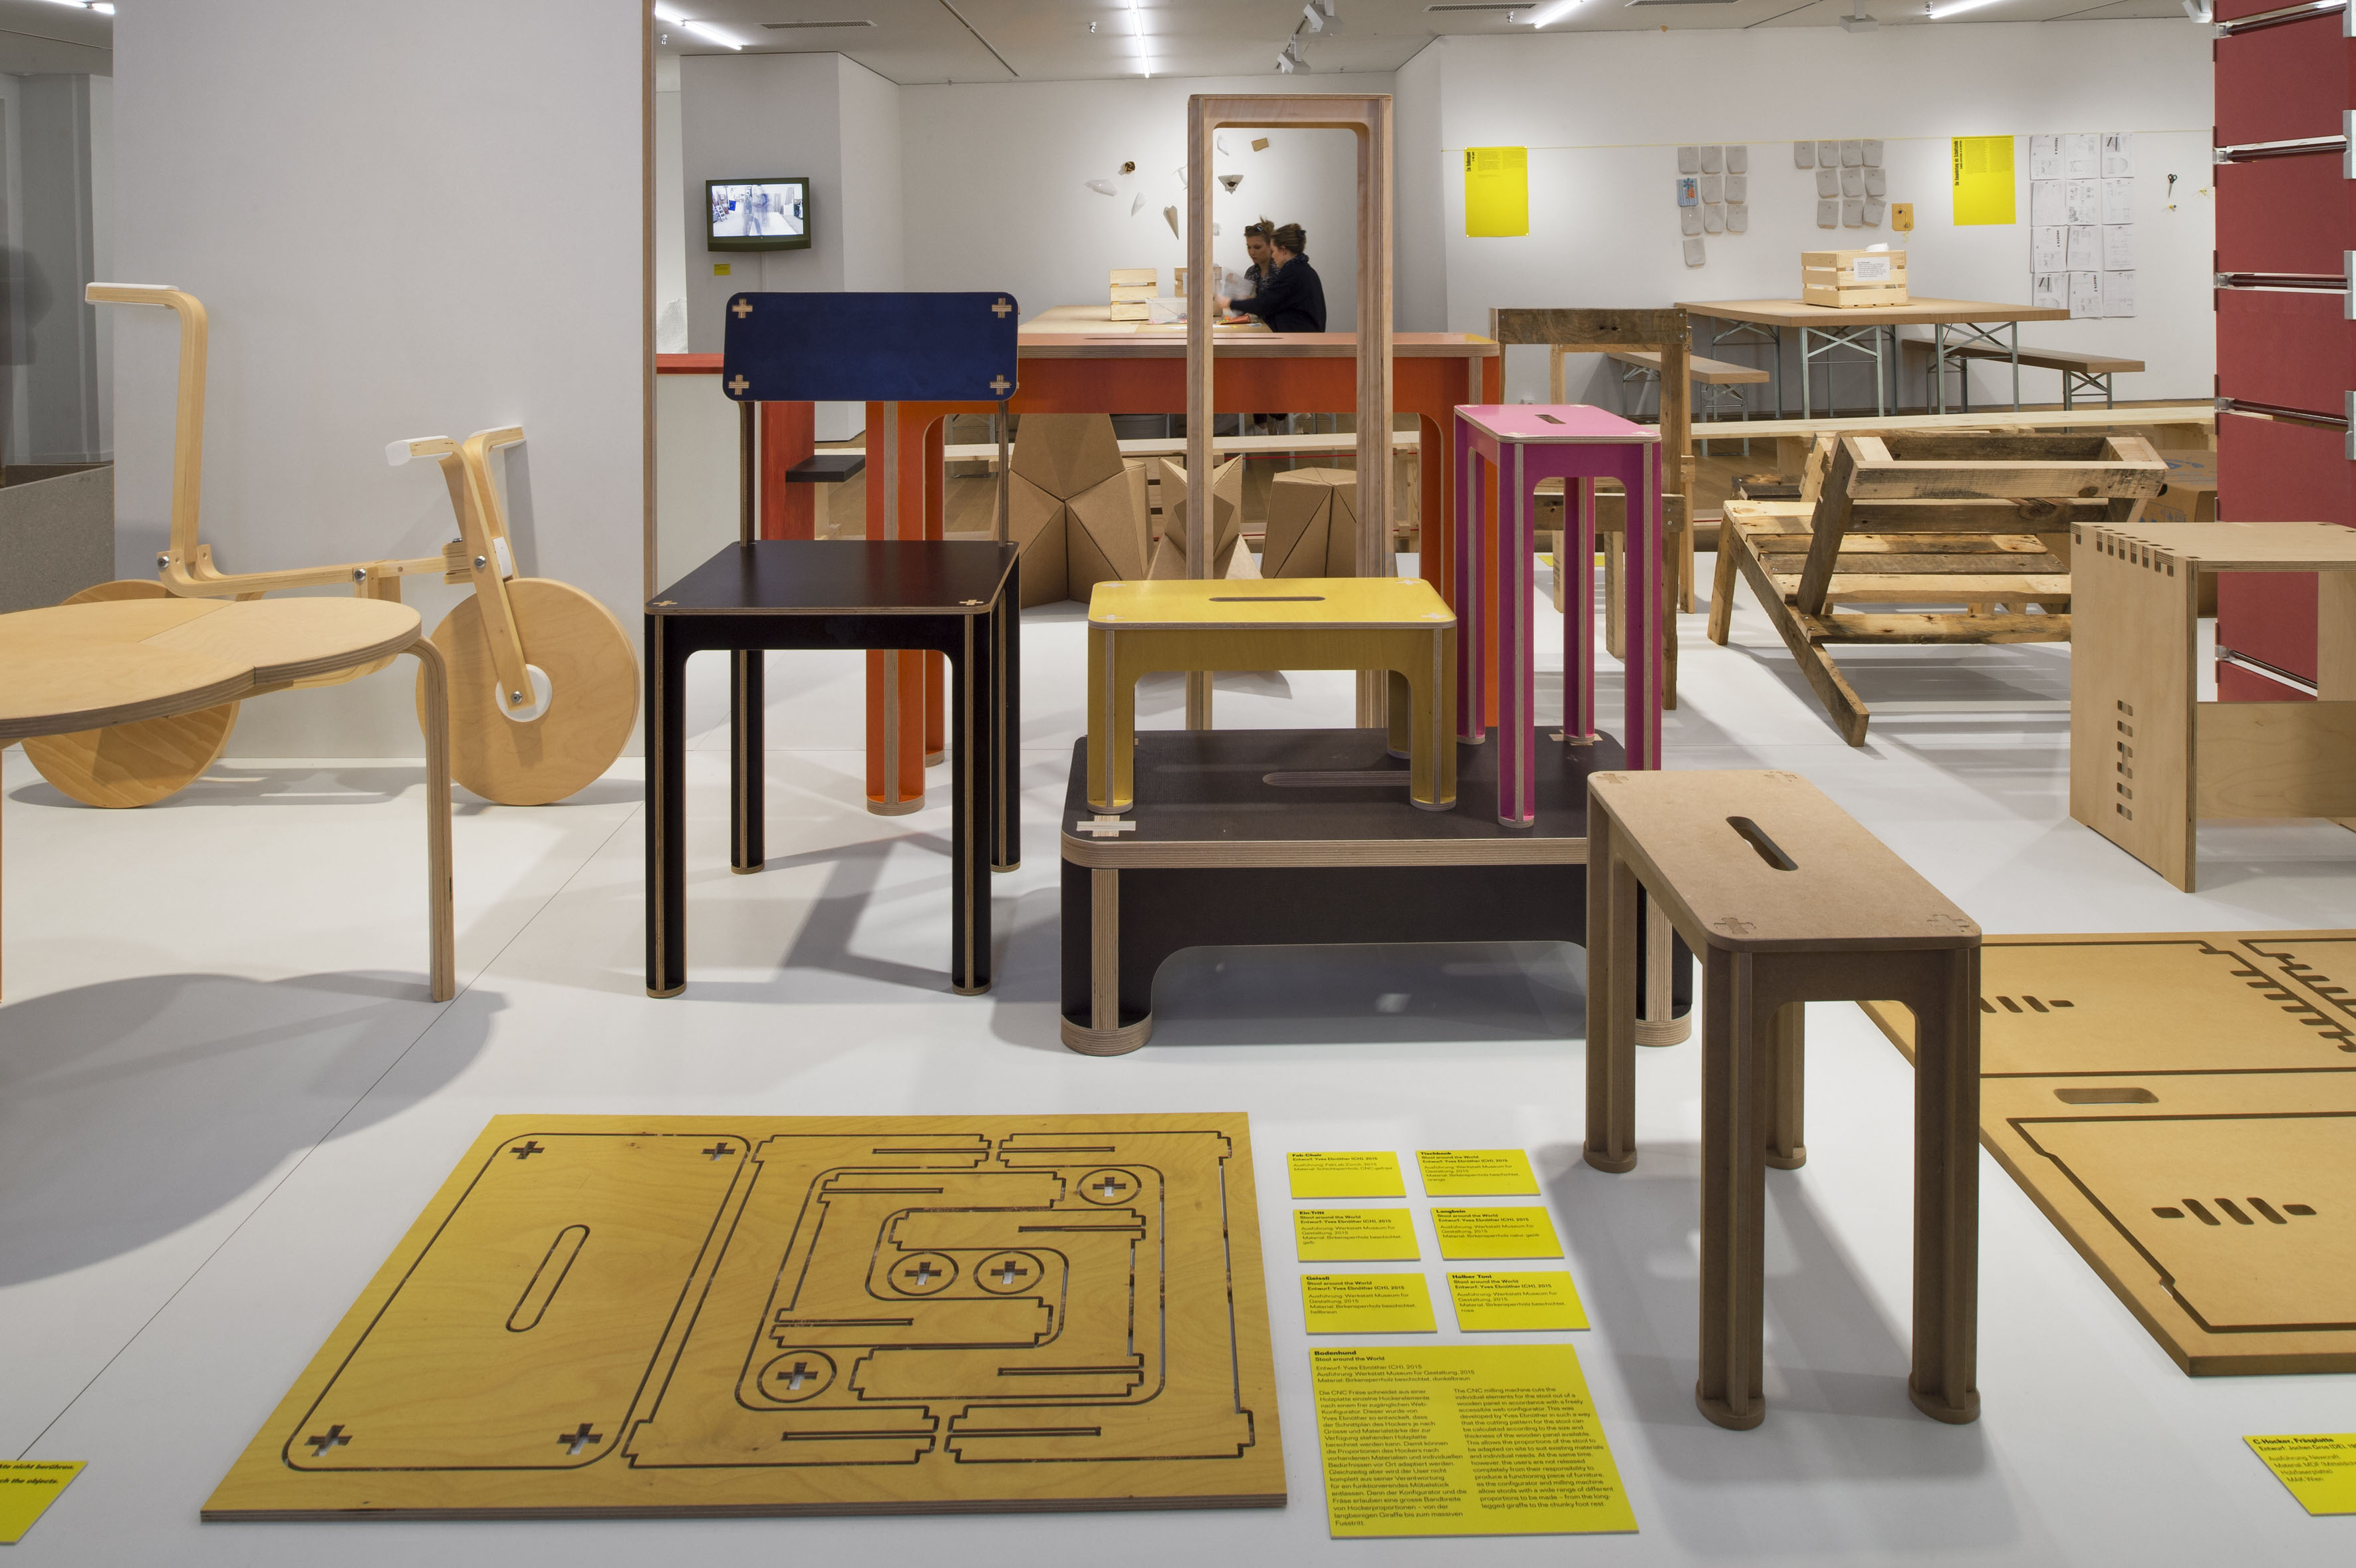 Penccil diy design exhibition do it yourself design at museum fr gestaltung schaudepot 20 march to 31 may 2015 photo regula bearth zhdk solutioingenieria Gallery